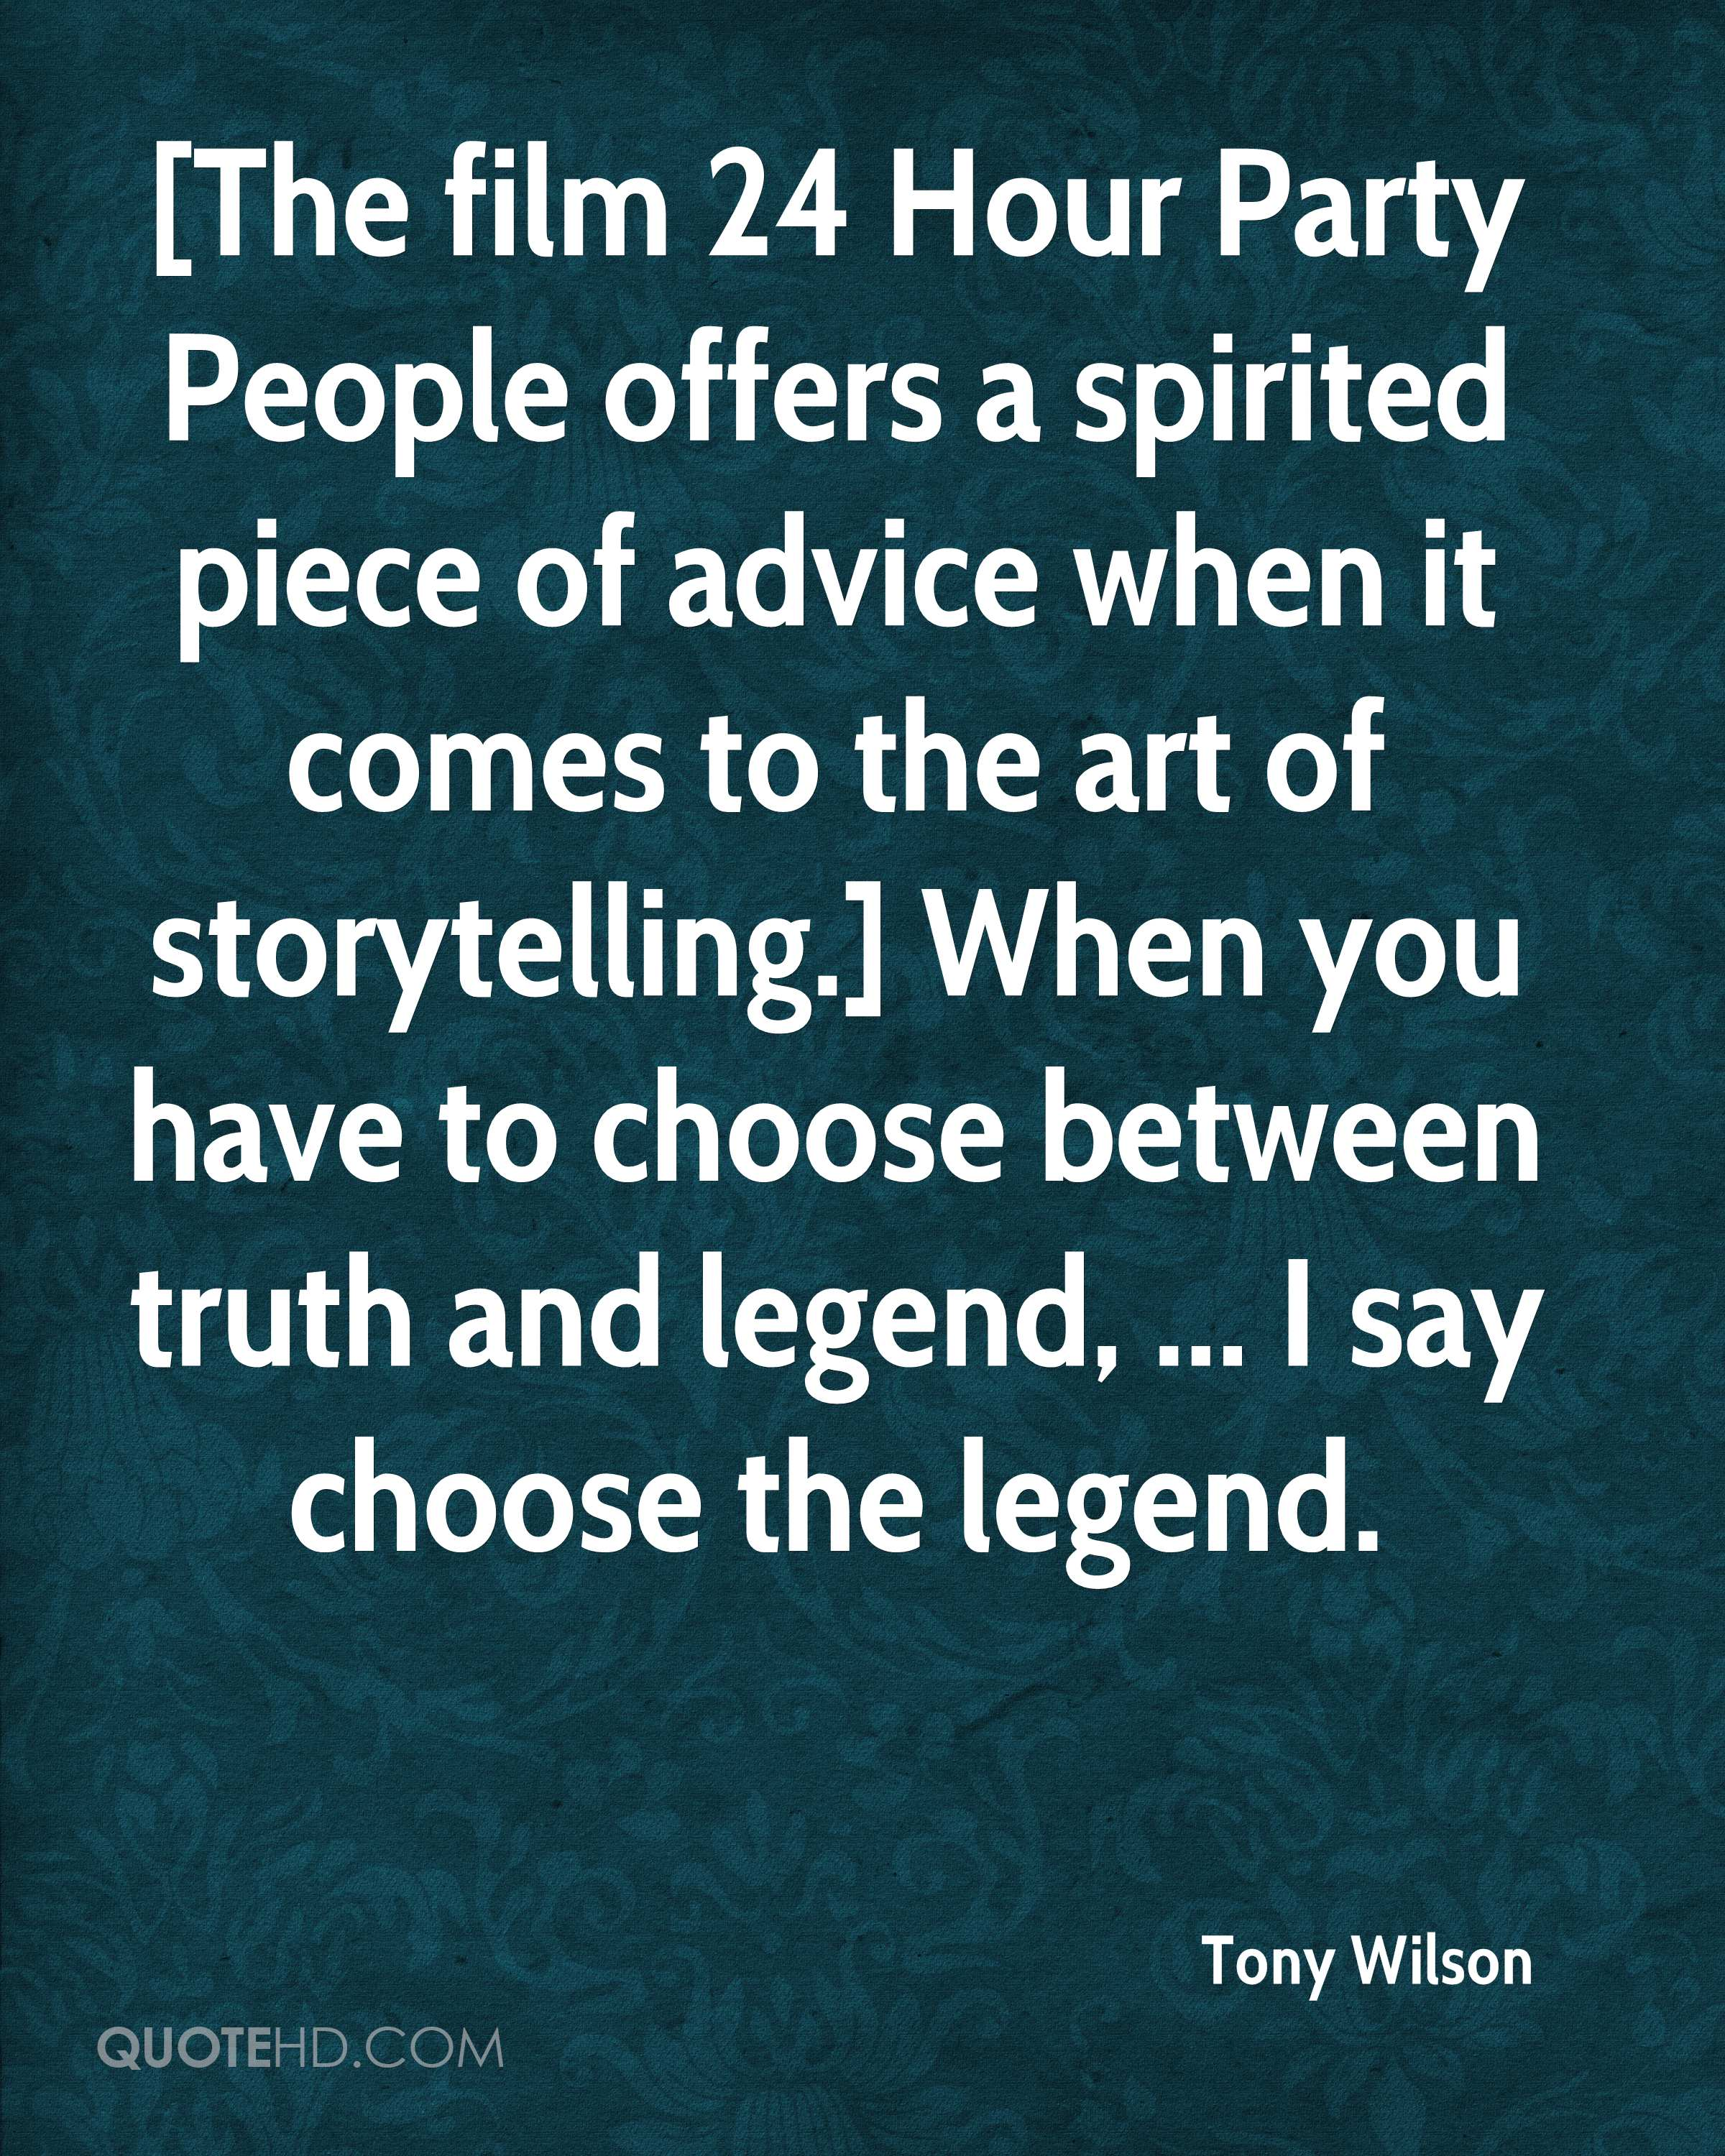 [The film 24 Hour Party People offers a spirited piece of advice when it comes to the art of storytelling.] When you have to choose between truth and legend, ... I say choose the legend.